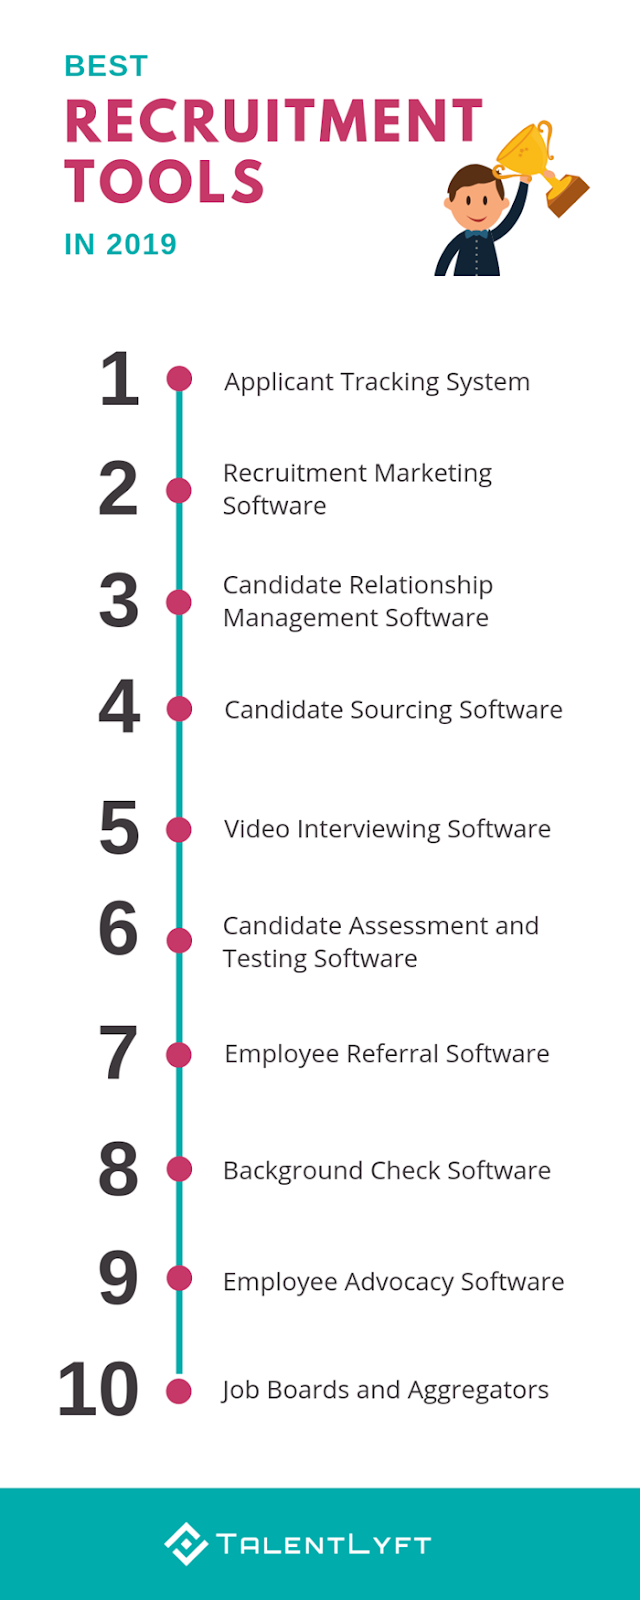 Best-recruitment-tools-2019-infographic